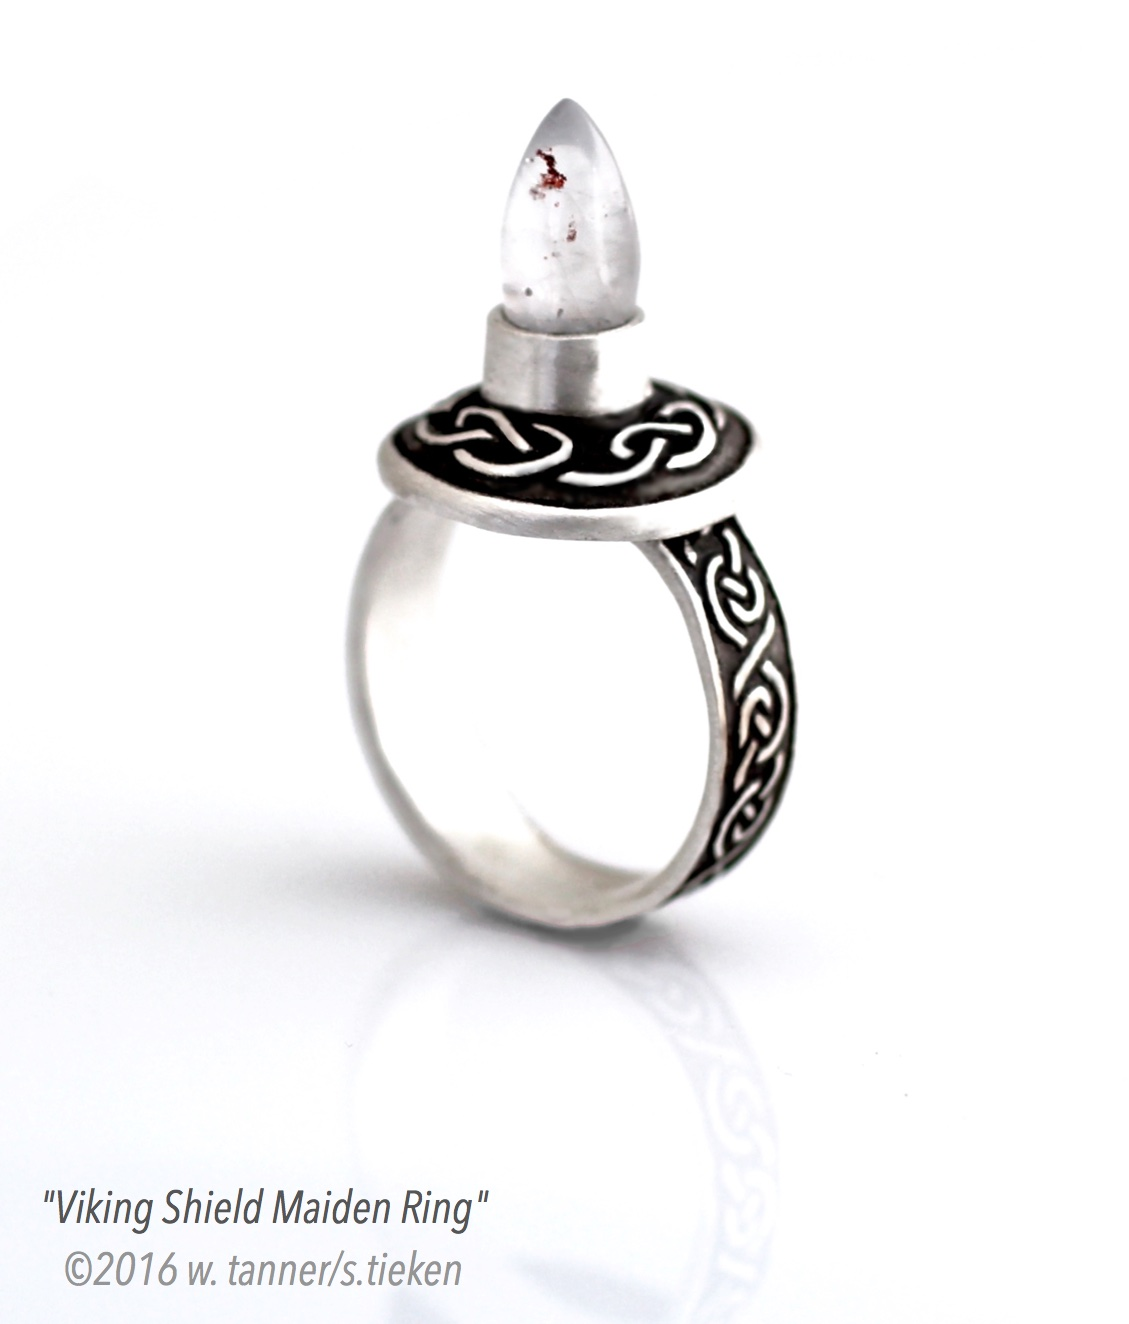 Ring Design Ideas modernly designed this artistic engagement ring features a teardrop shaped bezel setting with three Viking Shield Maiden Ring Design Idea Ii